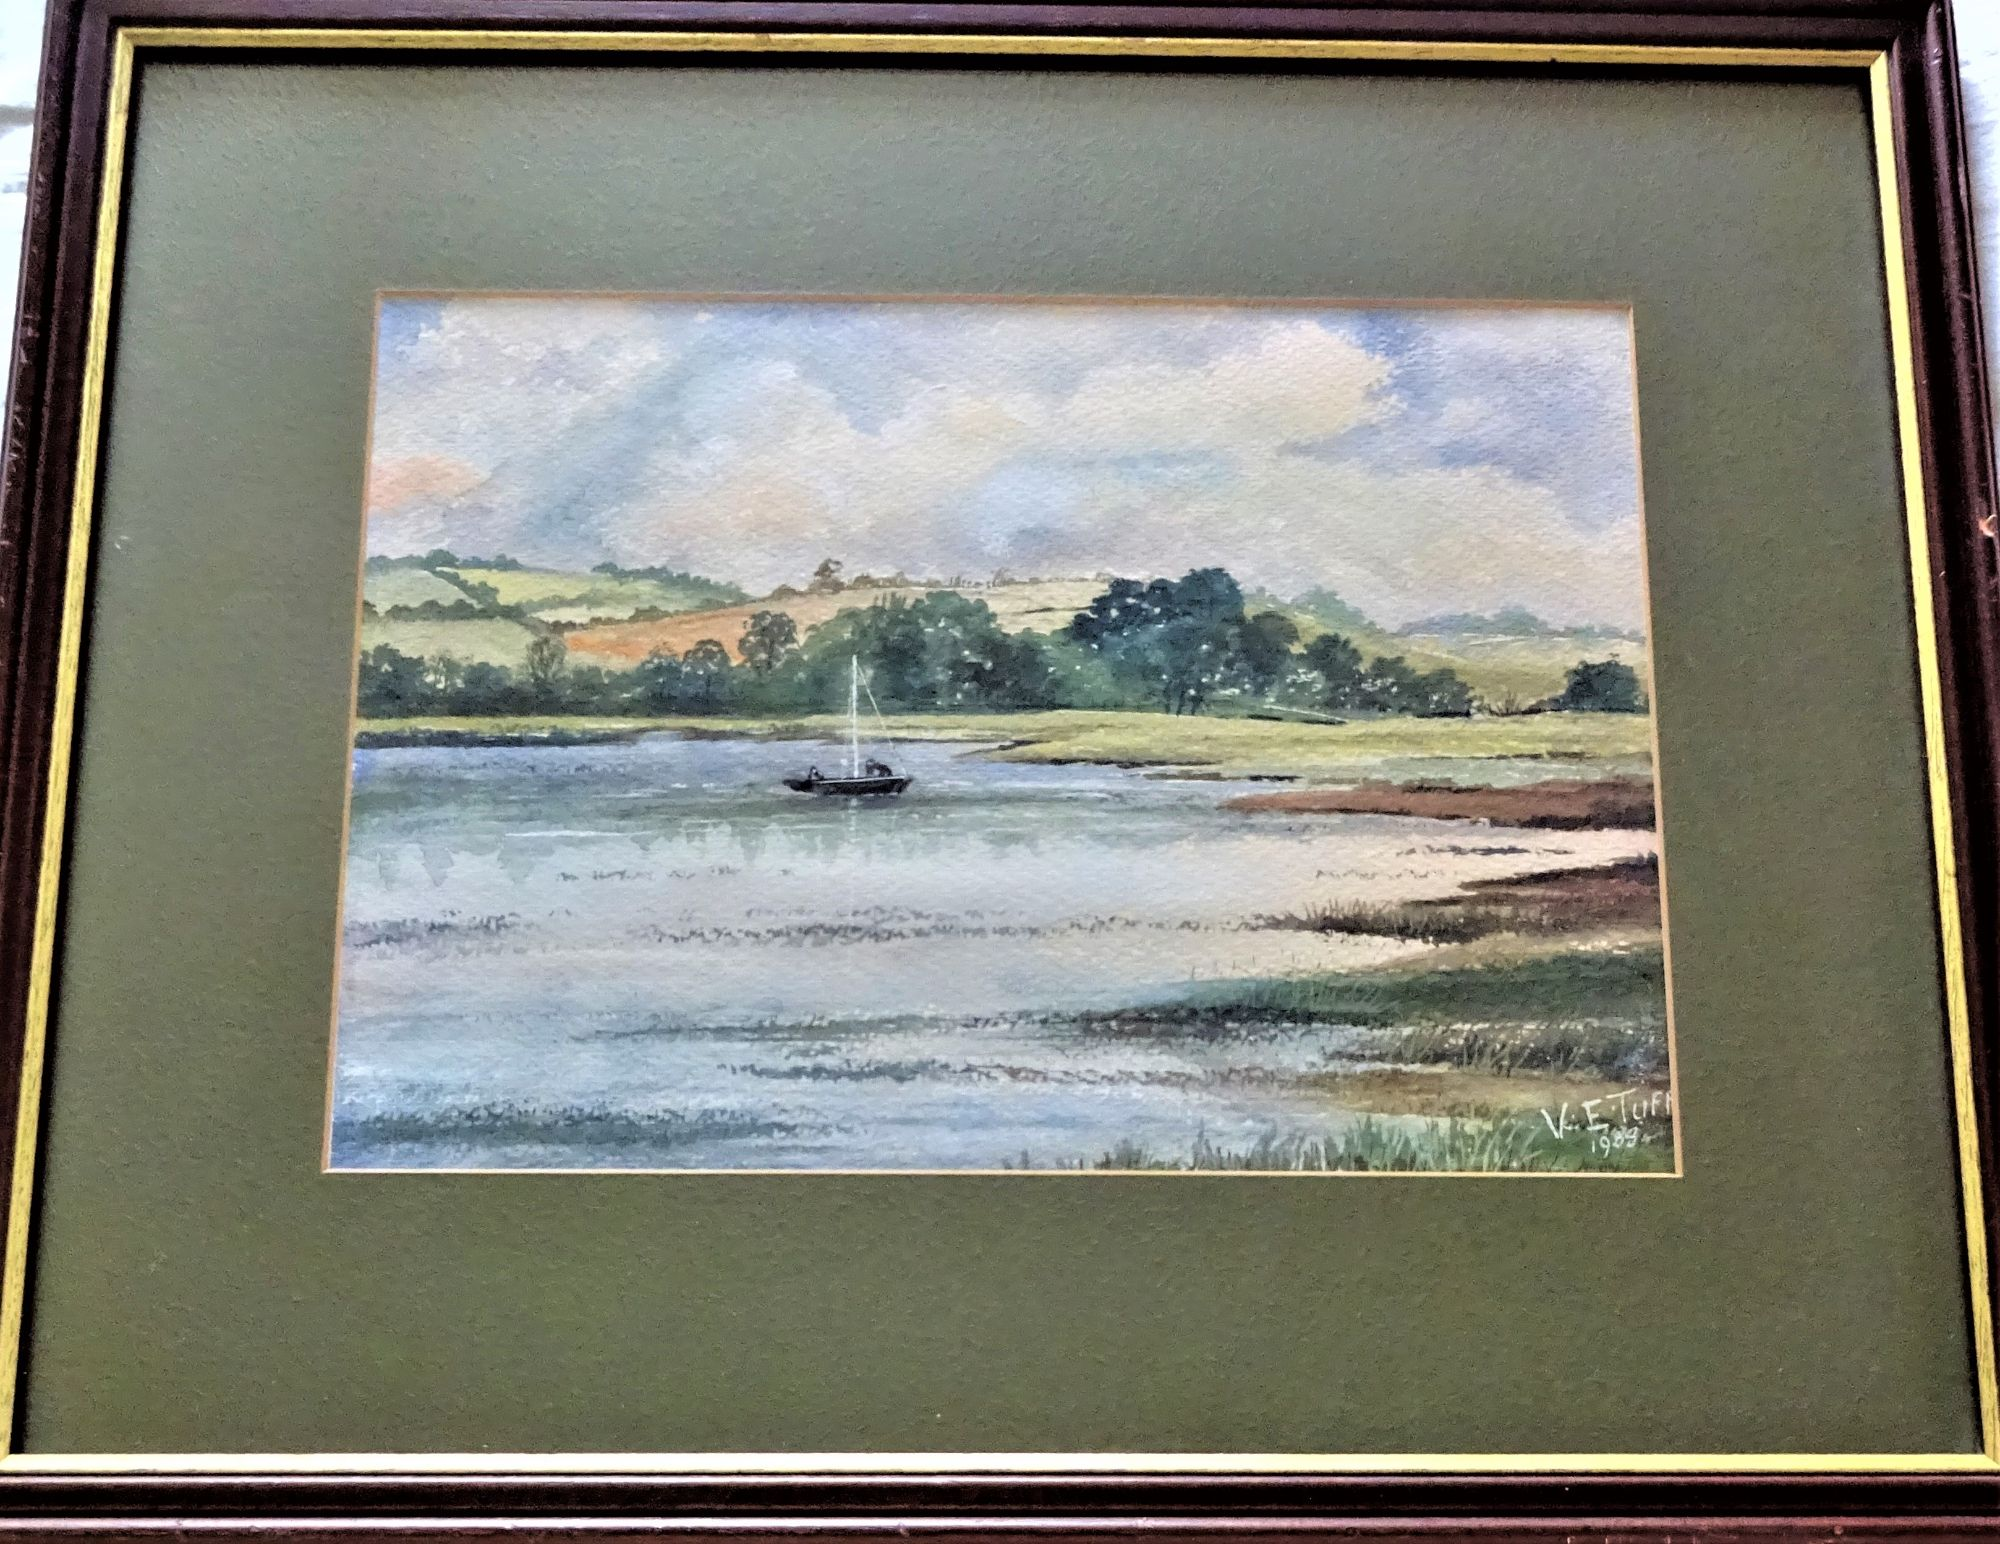 Lake scene near Belchford Lincolnshire, watercolour and gouache, signed and dated V.E. Tuff 1988. Framed.